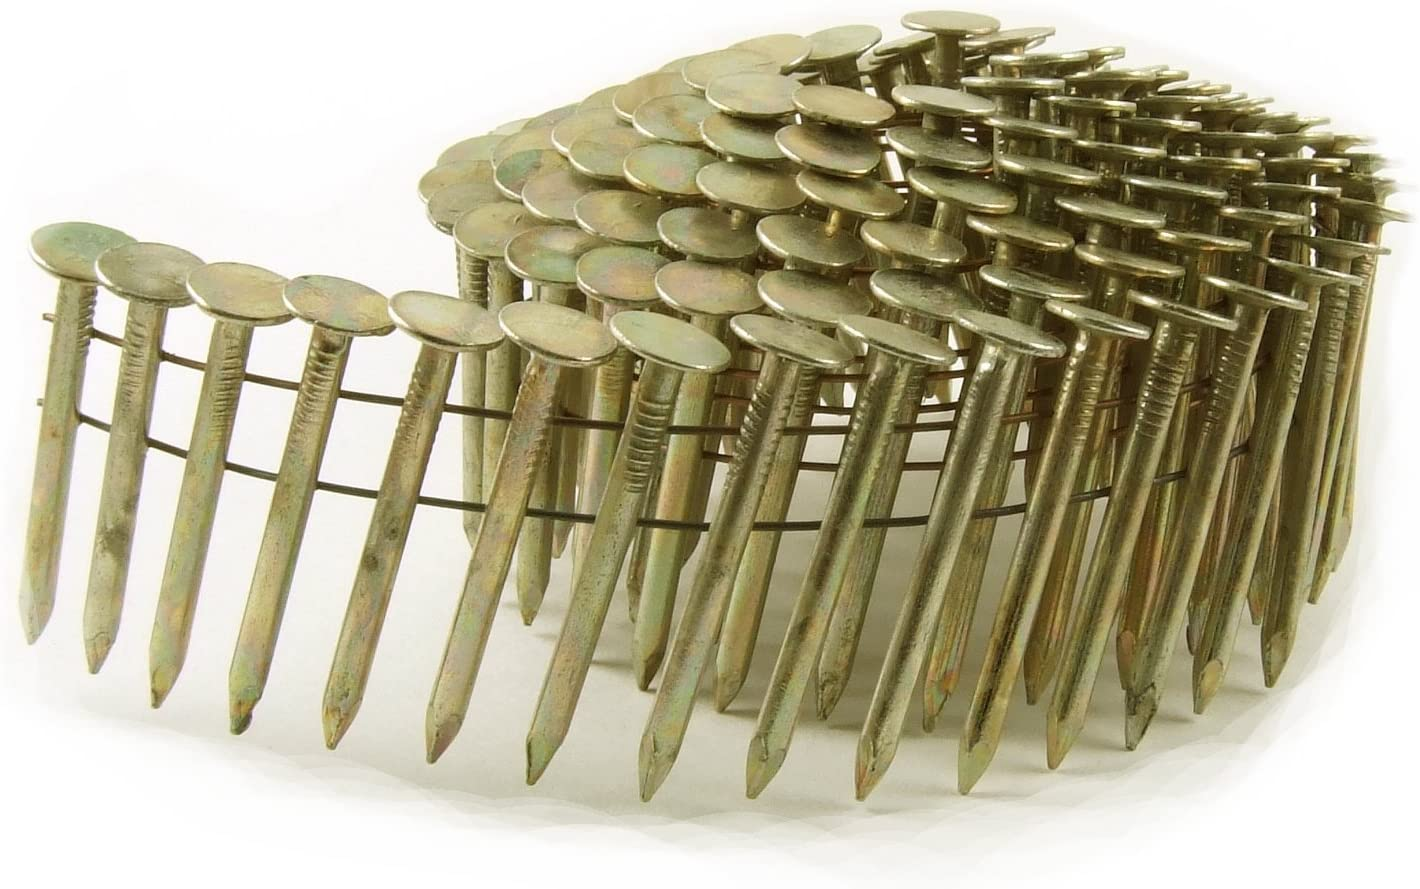 B0000225FX B&C Eagle CR-1 Round Head 1-Inch x .120 Smooth Shank Electrogalvanized Coil Roofing Nails (7,200 per box) 71HVQsUYNPL